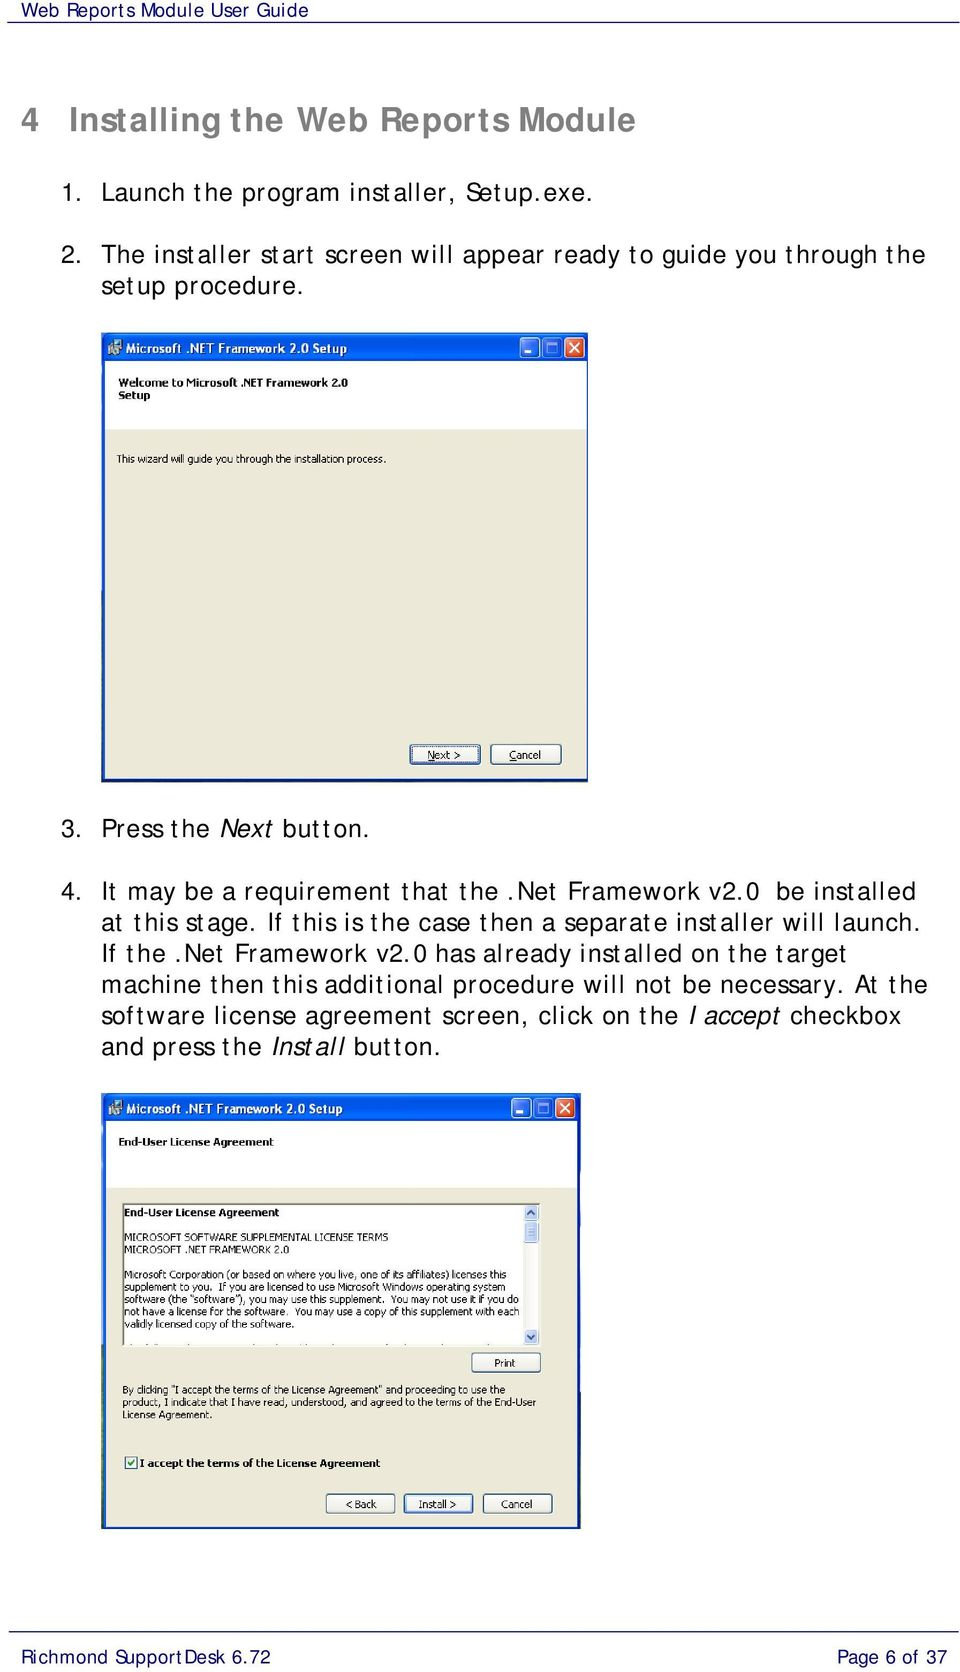 net Framework v2.0 be installed at this stage. If this is the case then a separate installer will launch. If the.net Framework v2.0 has already installed on the target machine then this additional procedure will not be necessary.